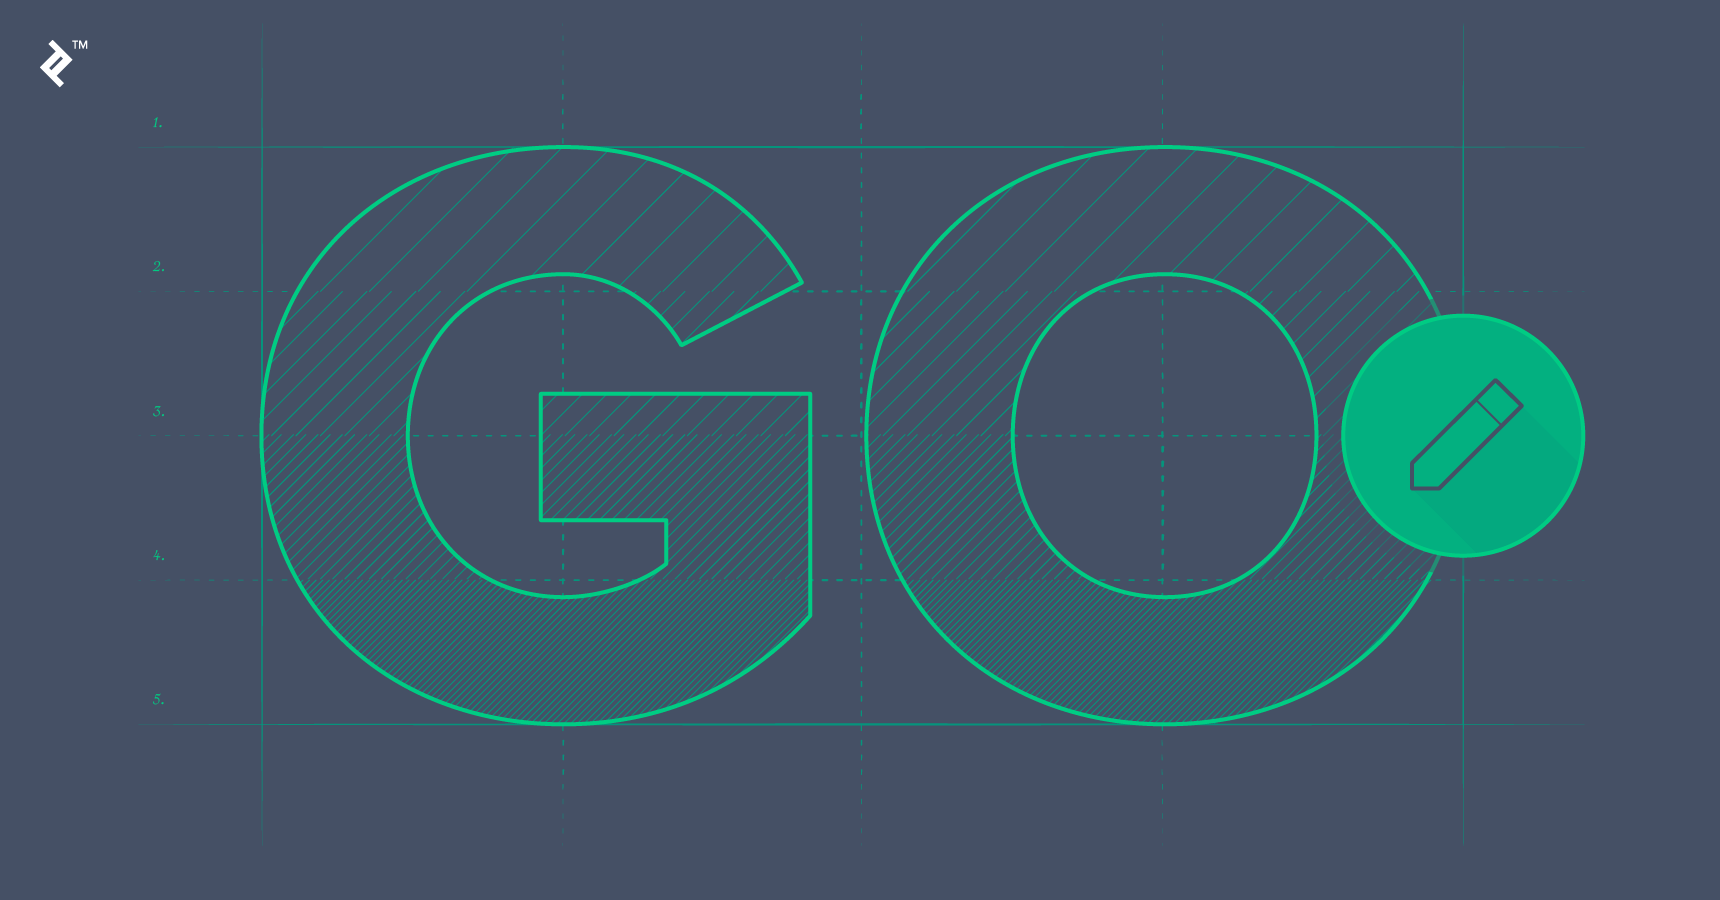 Go logo illustration